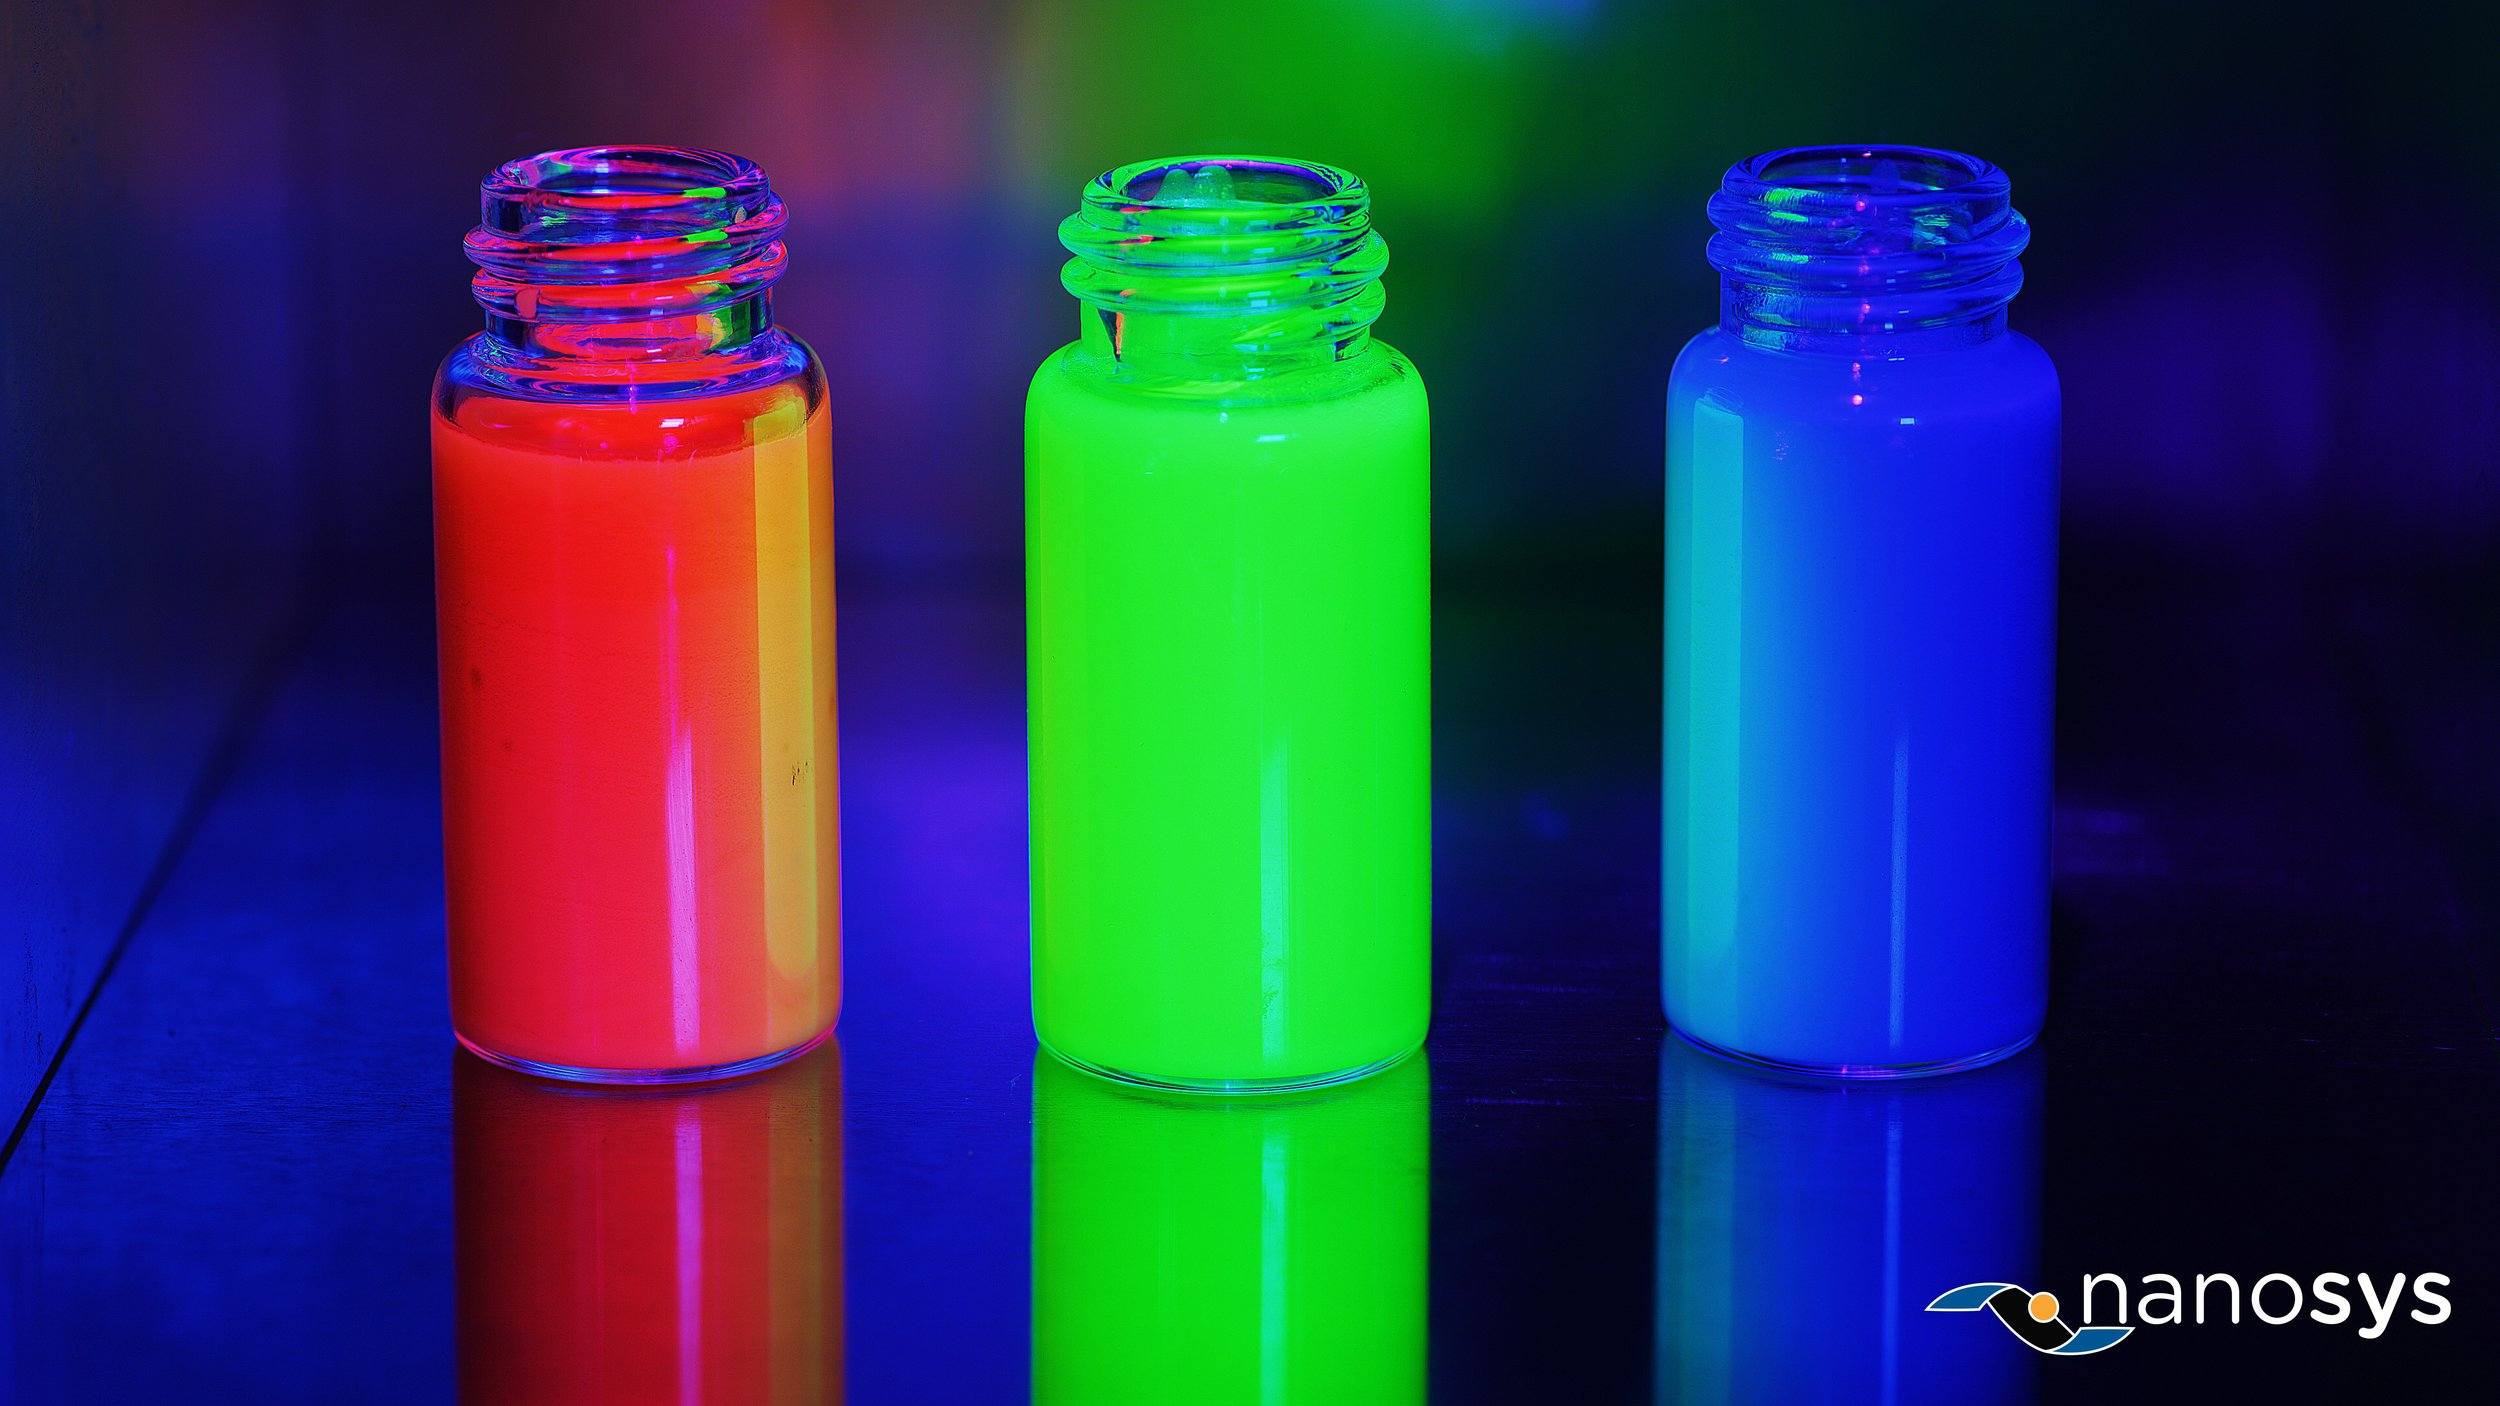 Nanosys Heavy Metal Free Quantum Dots: Image shows vials containing Nanosys state-of-the art Quantum Dot technology emitting red, green and blue light.